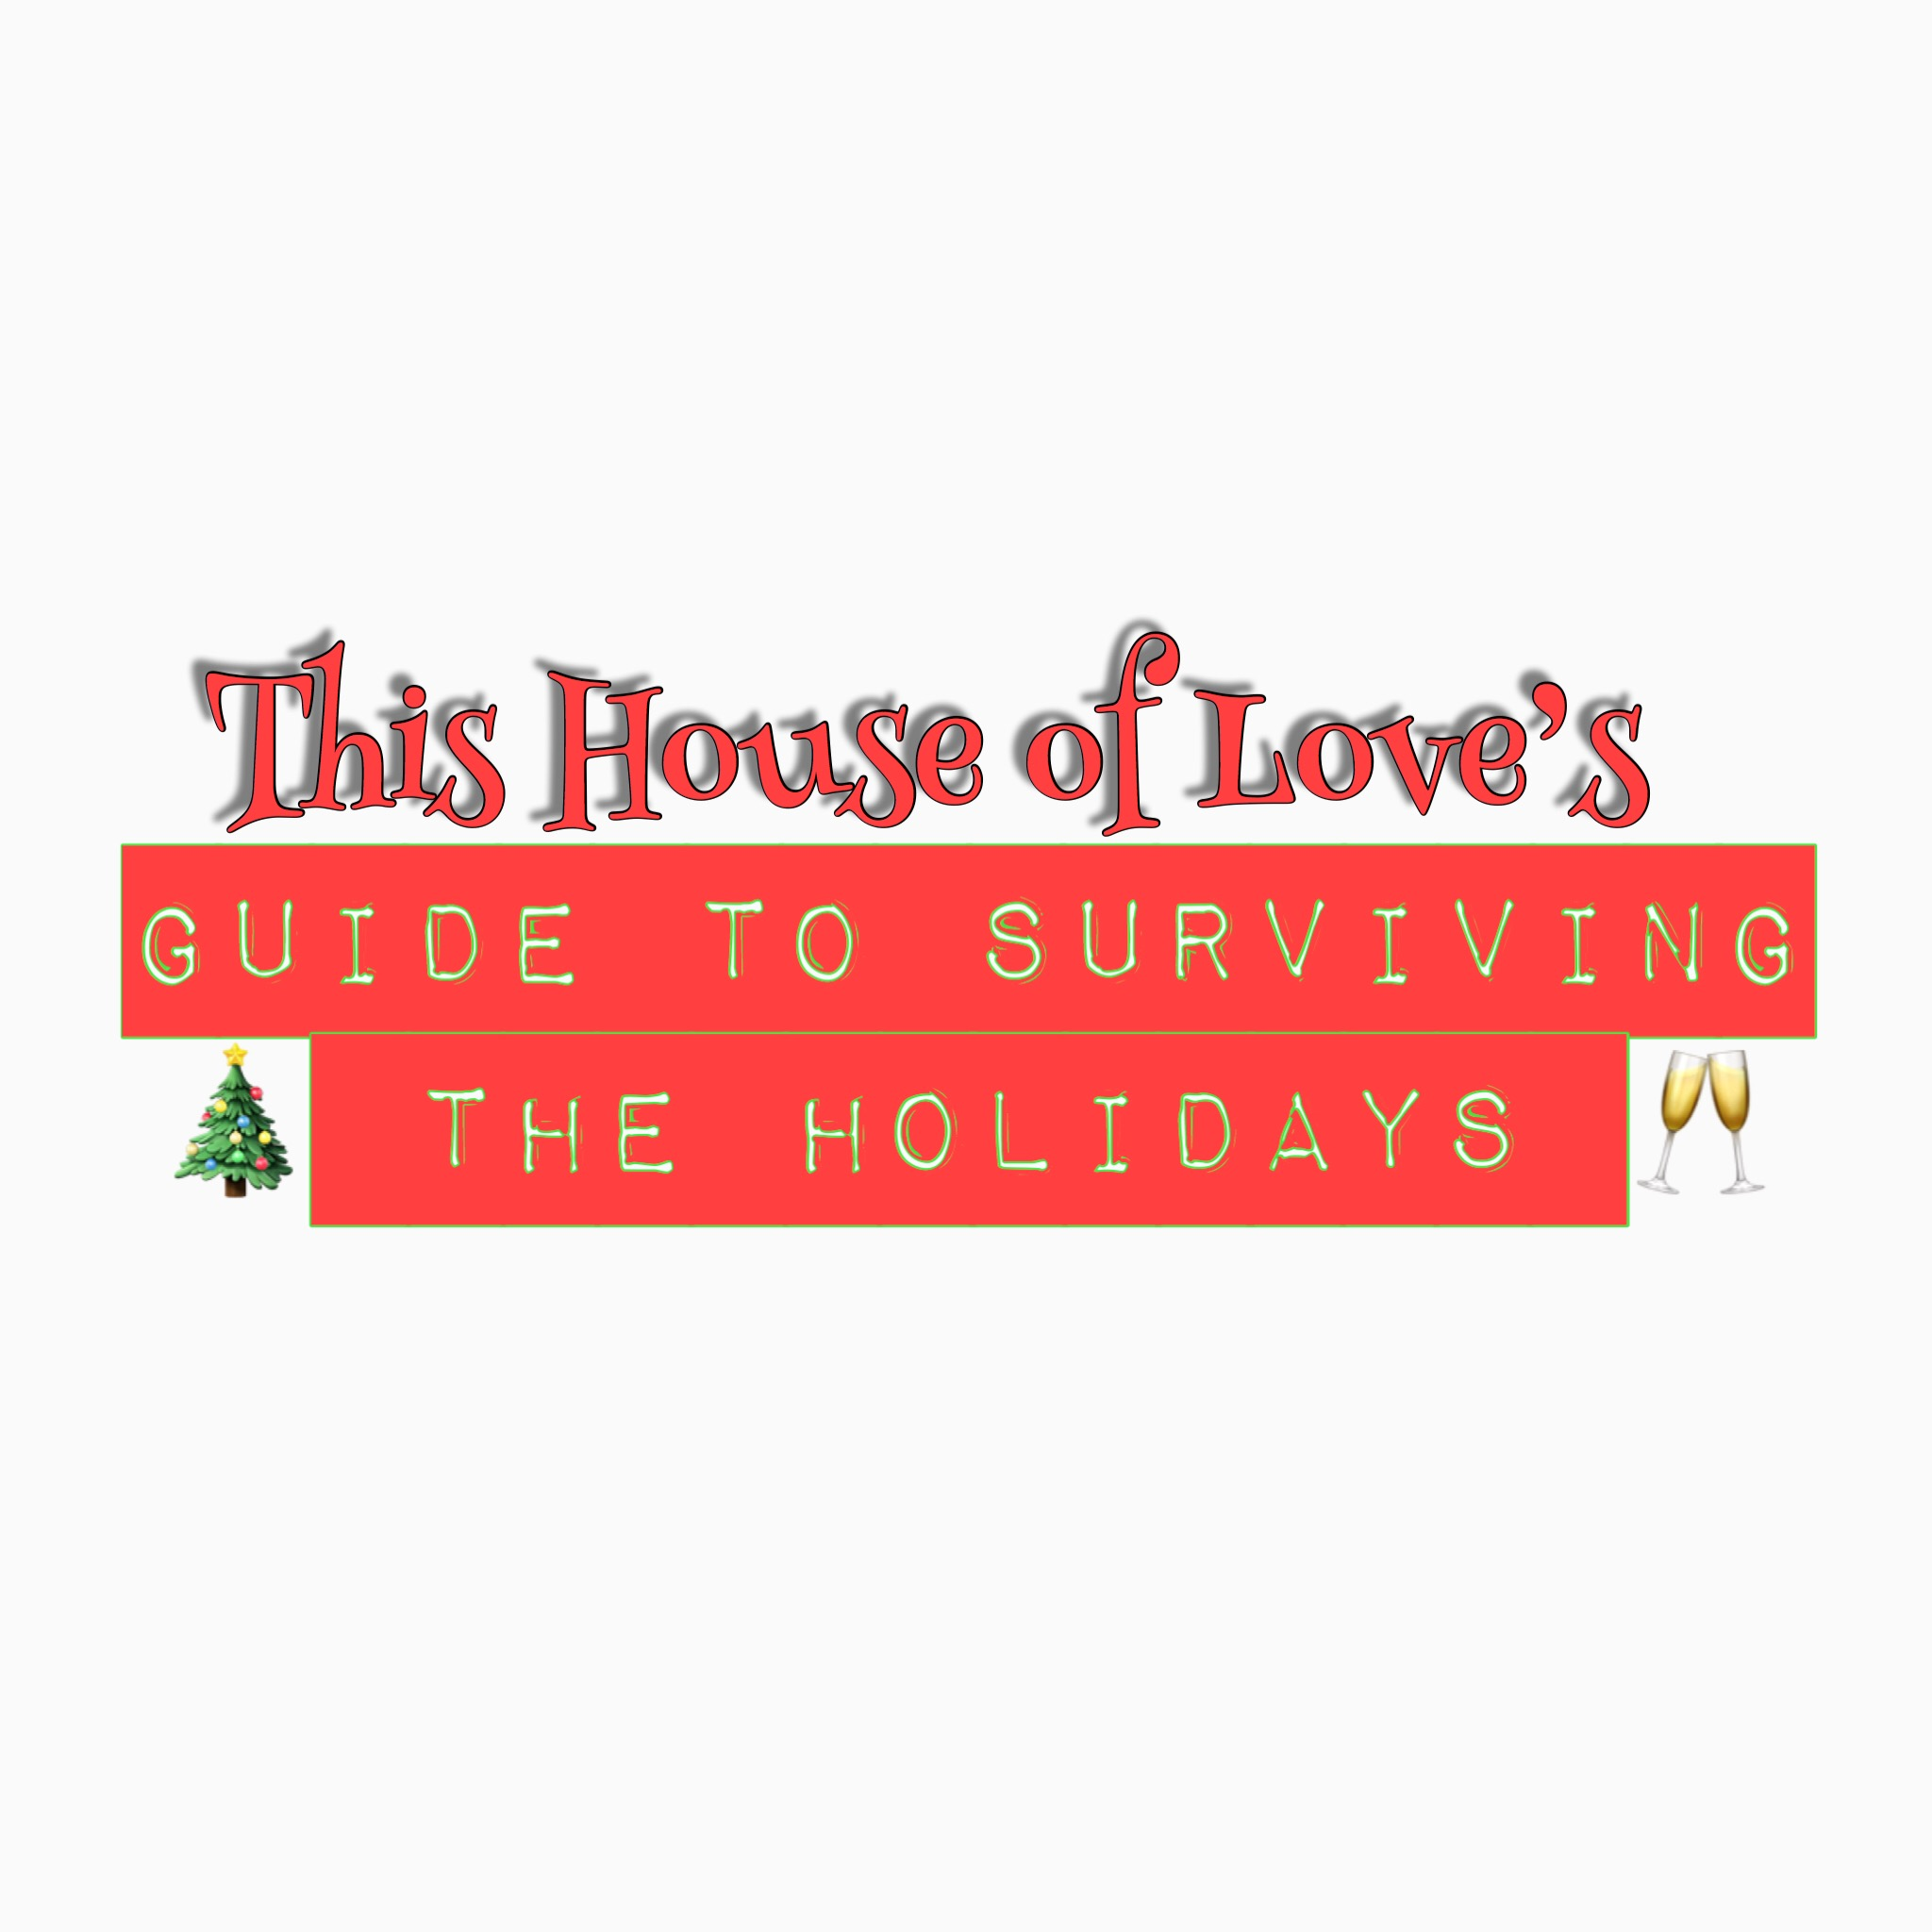 A Simplistic Holiday Survival Guide